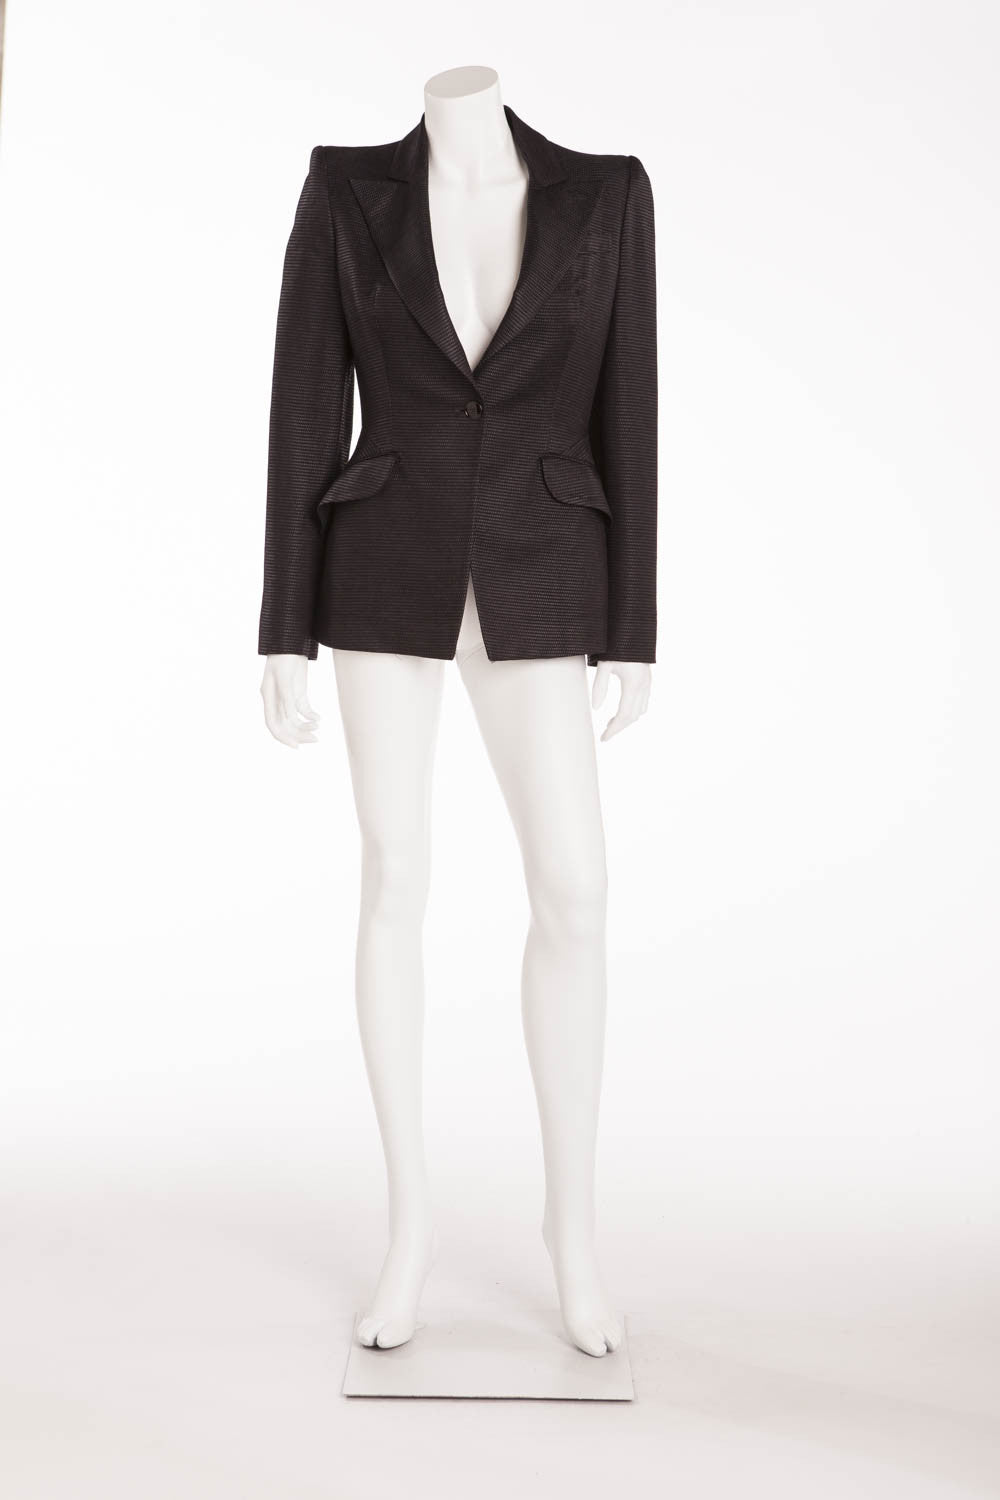 Original Alexander McQueen - Black Blazer - IT 42